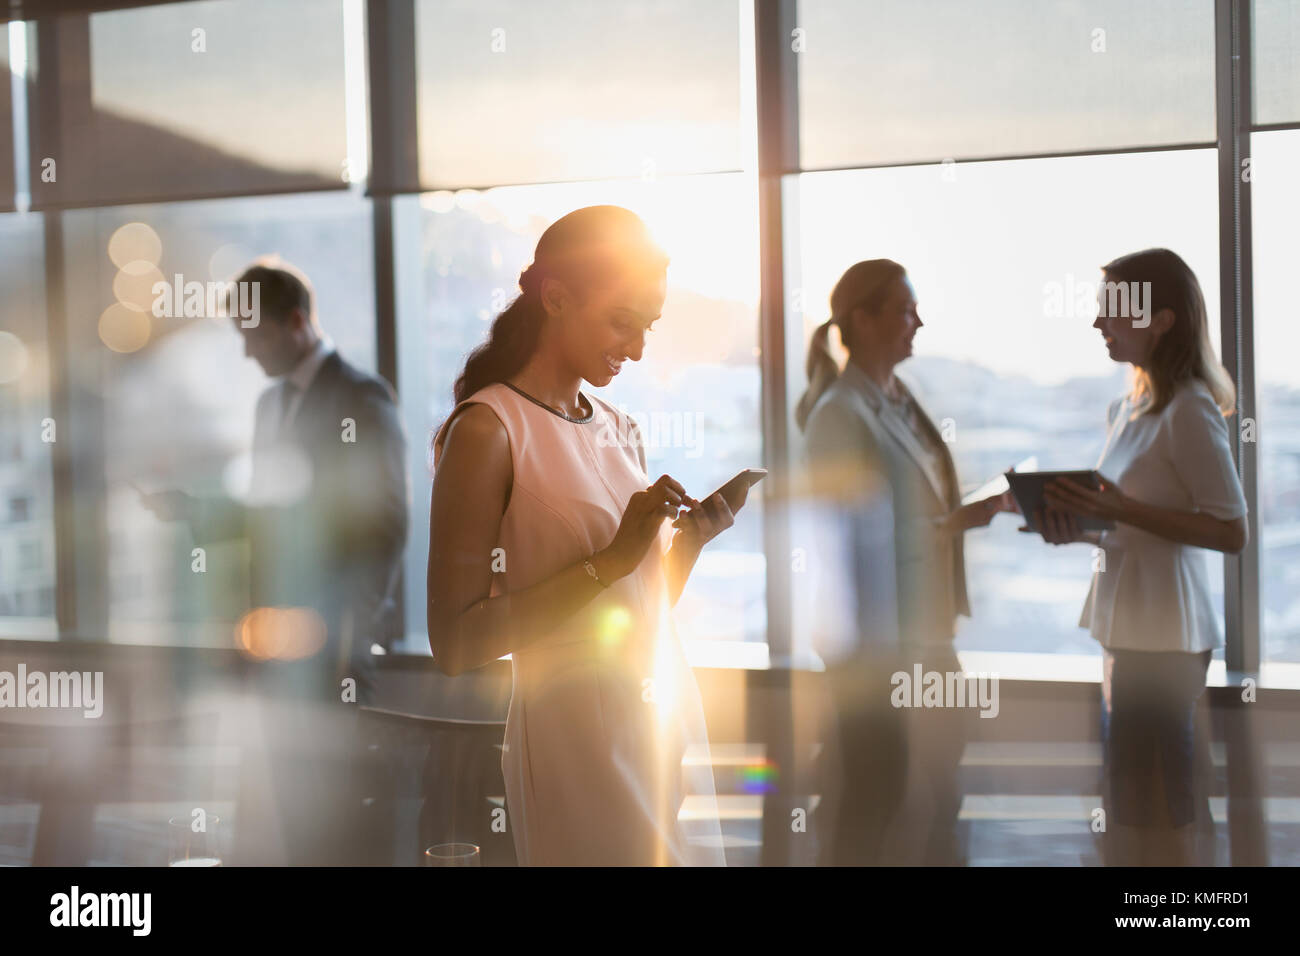 Businesswoman texting with cell phone in sunny conference room - Stock Image